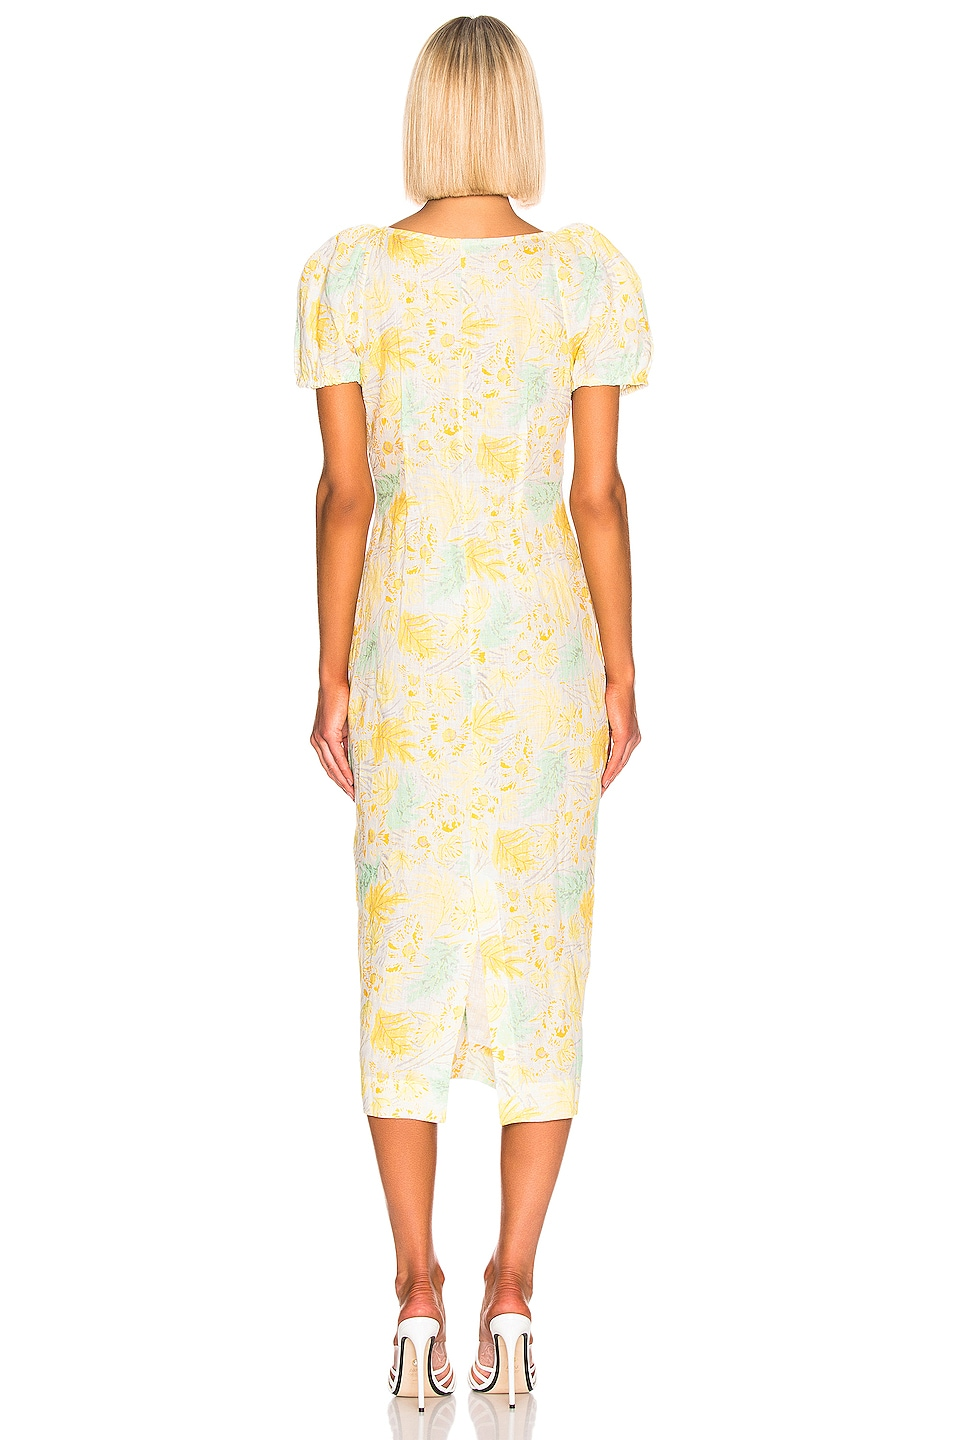 Image 3 of Cult Gaia Charlotte Dress in Lemonade Multi